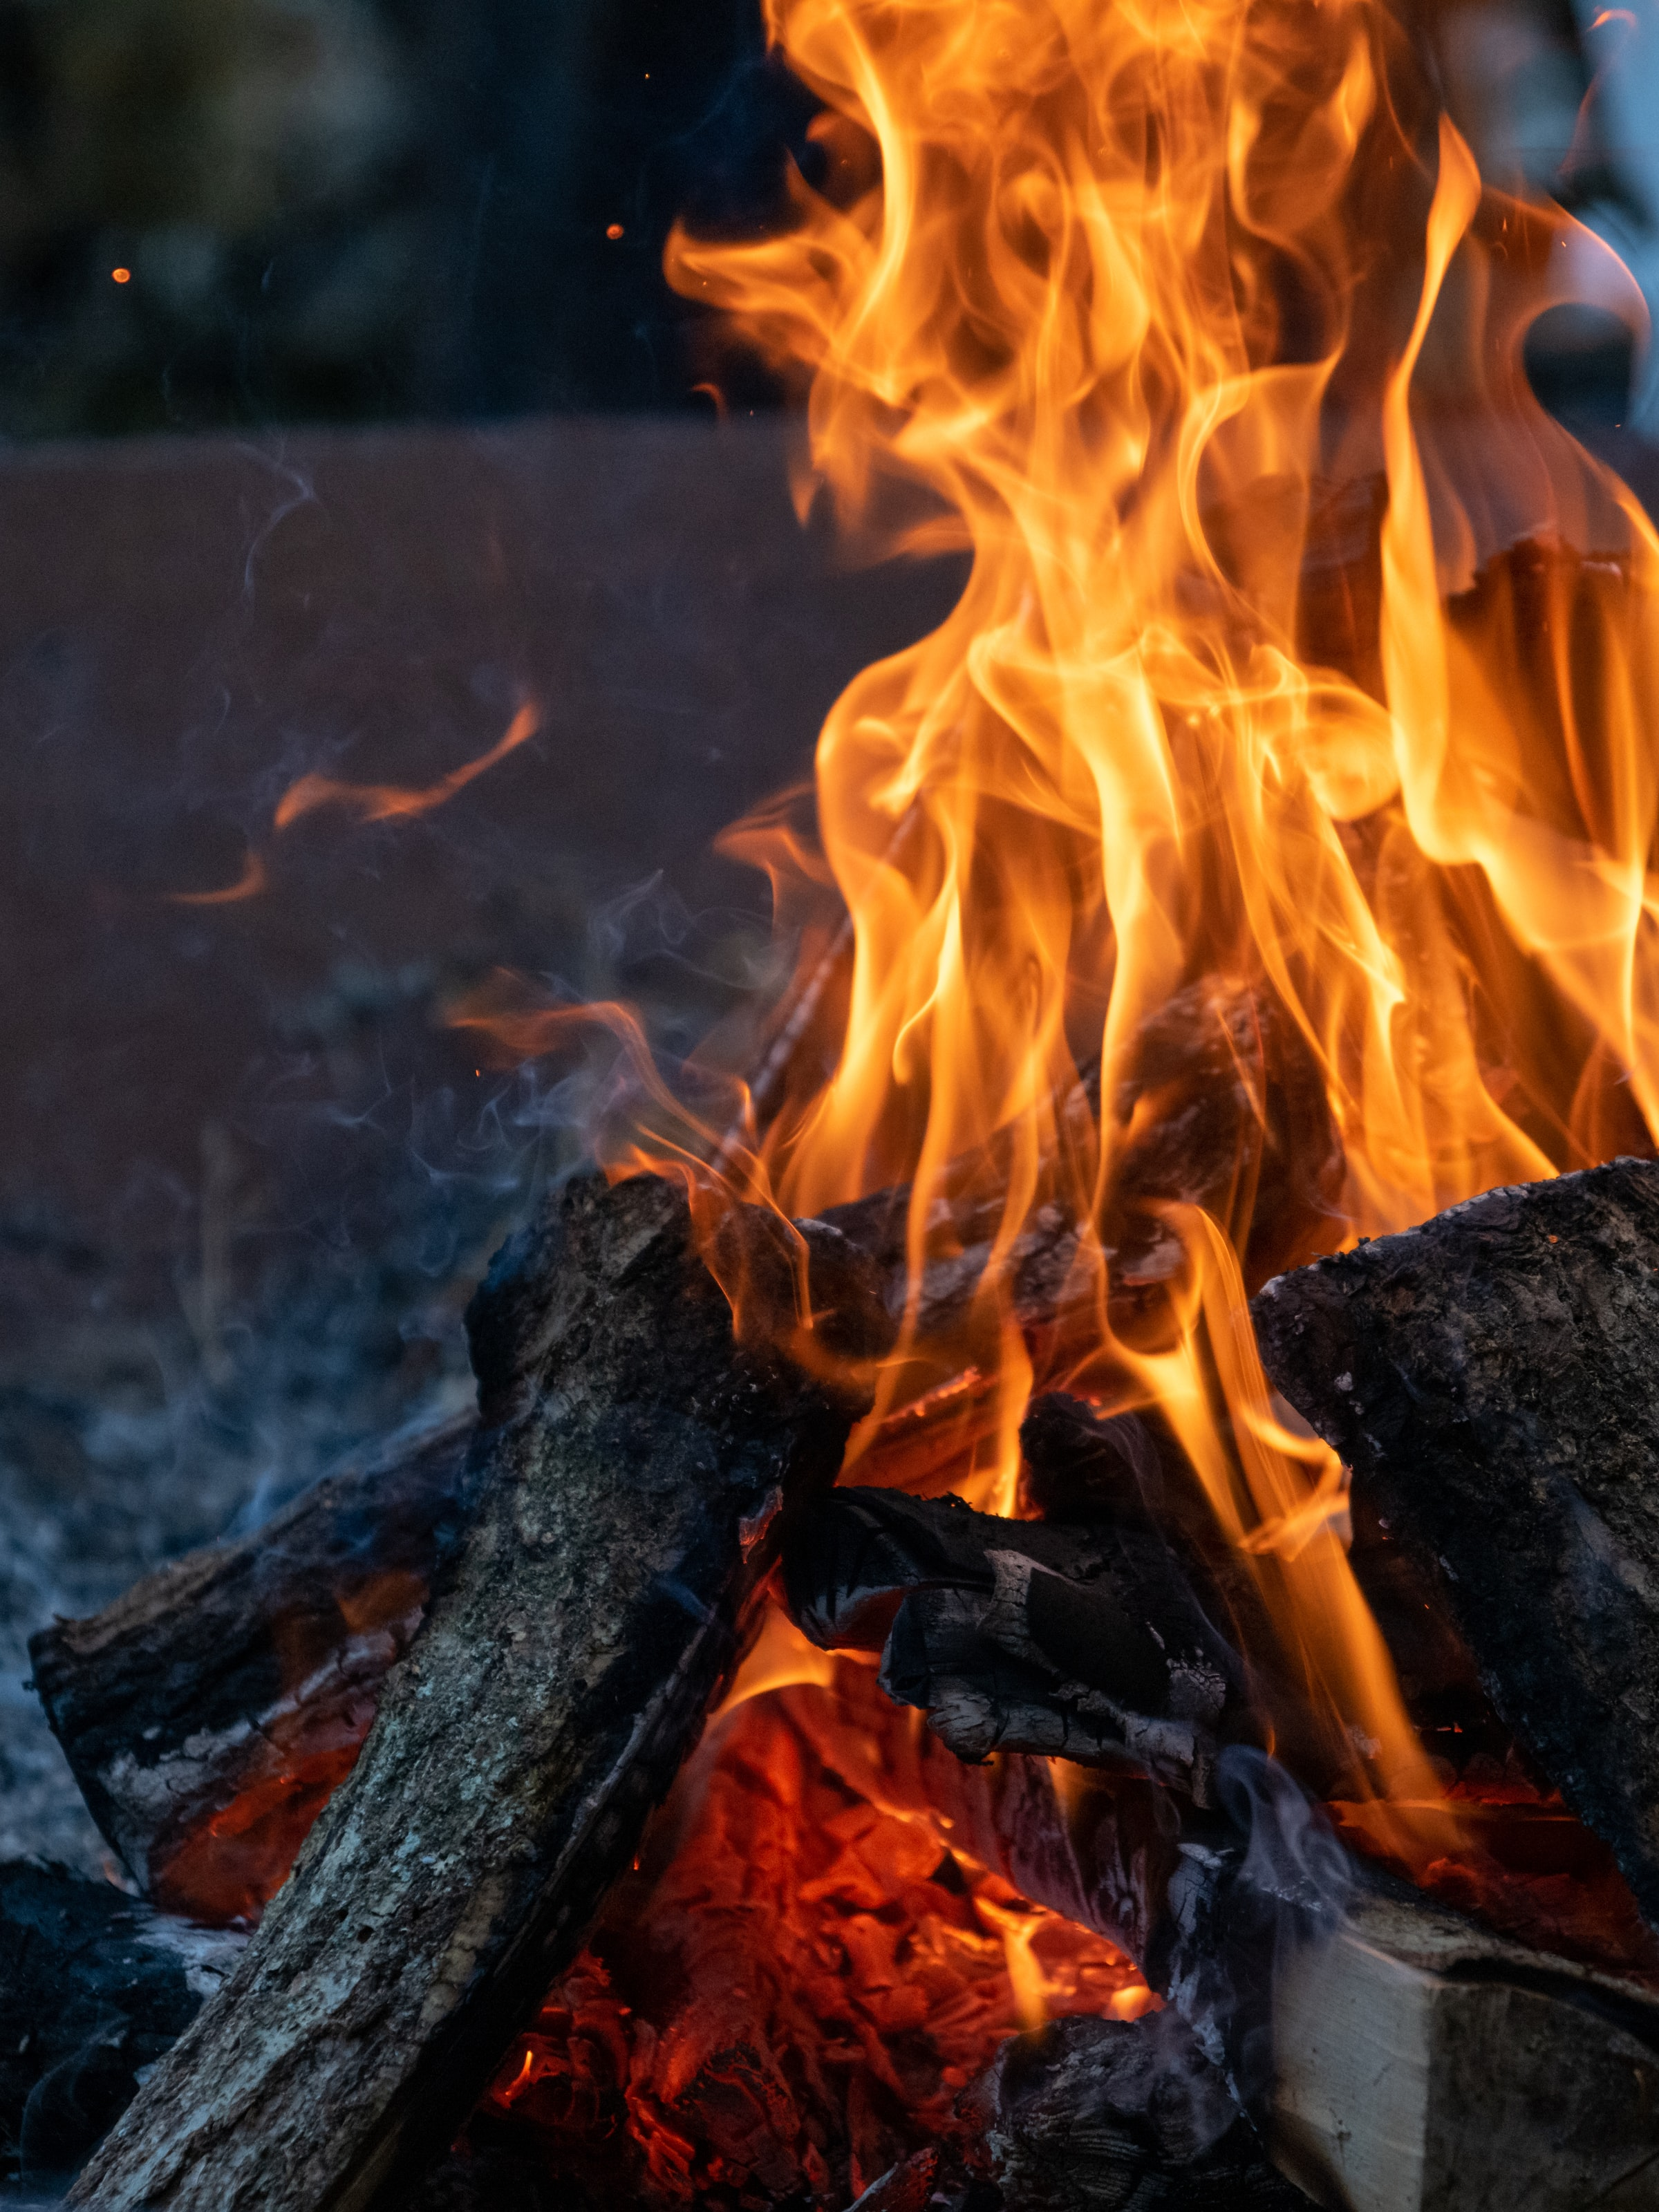 124300 Screensavers and Wallpapers Bonfire for phone. Download Fire, Bonfire, Flame, Miscellanea, Miscellaneous, Evening, Firewood pictures for free